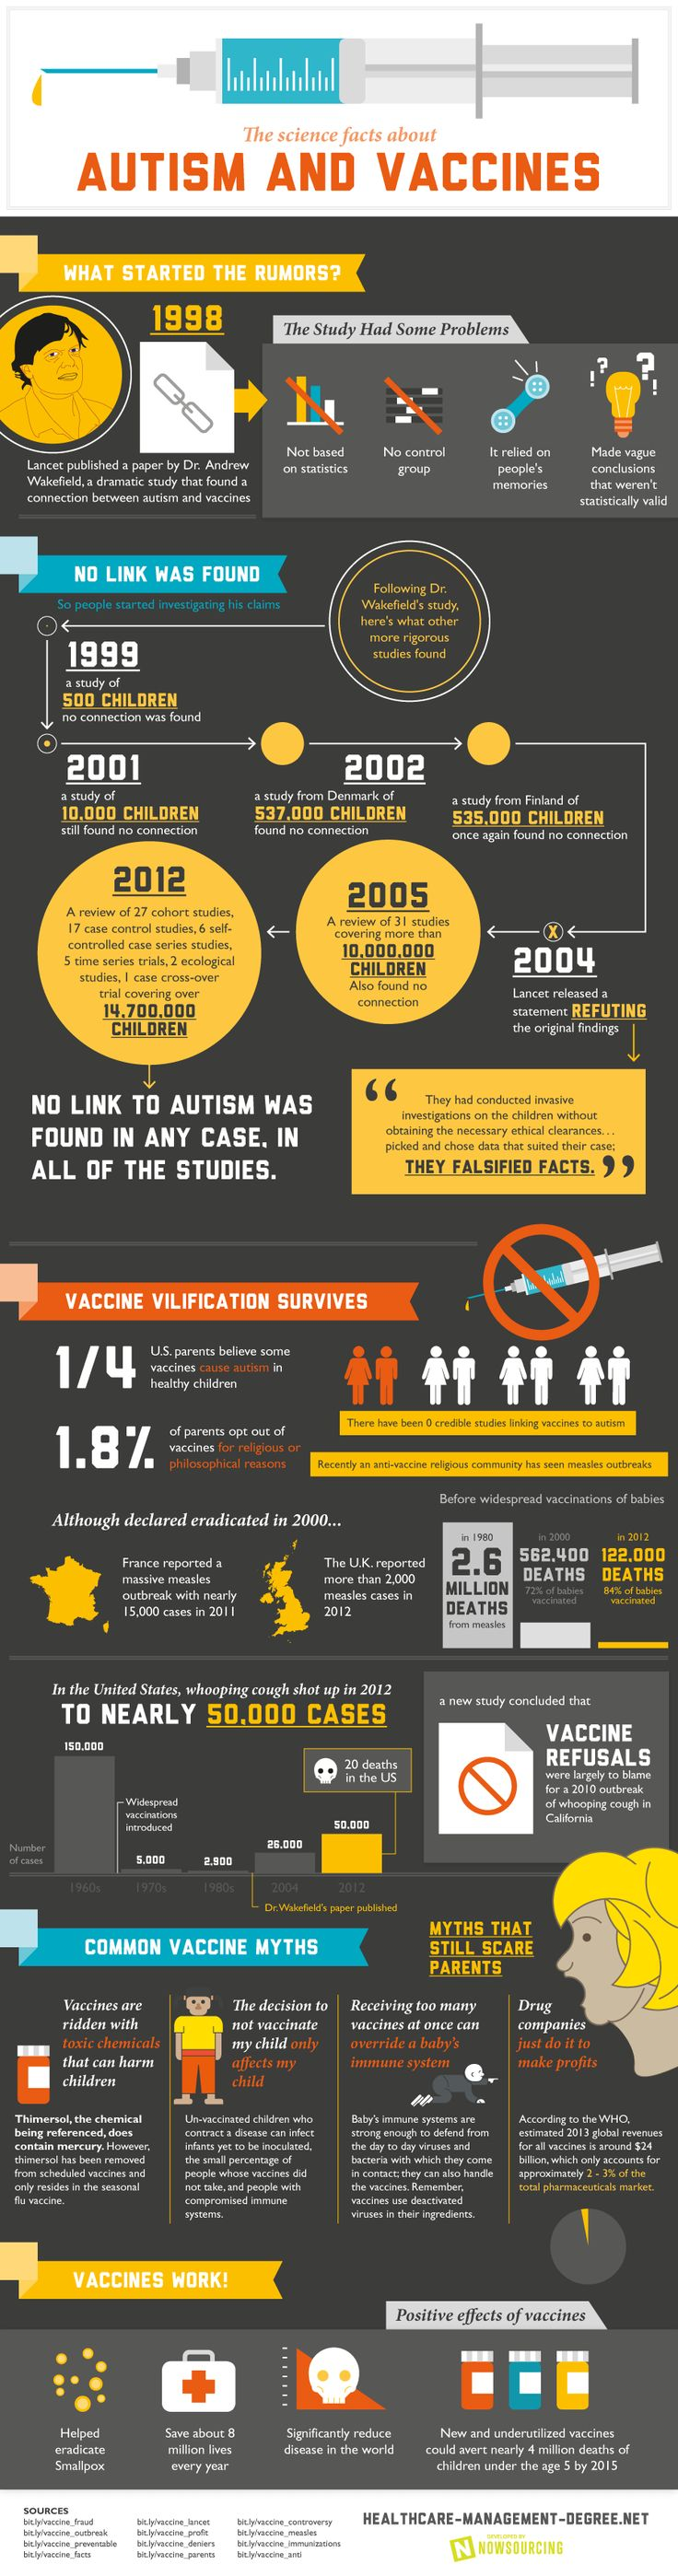 Do you know the truth about the connection between vaccines and autism? Hint: Science knows.